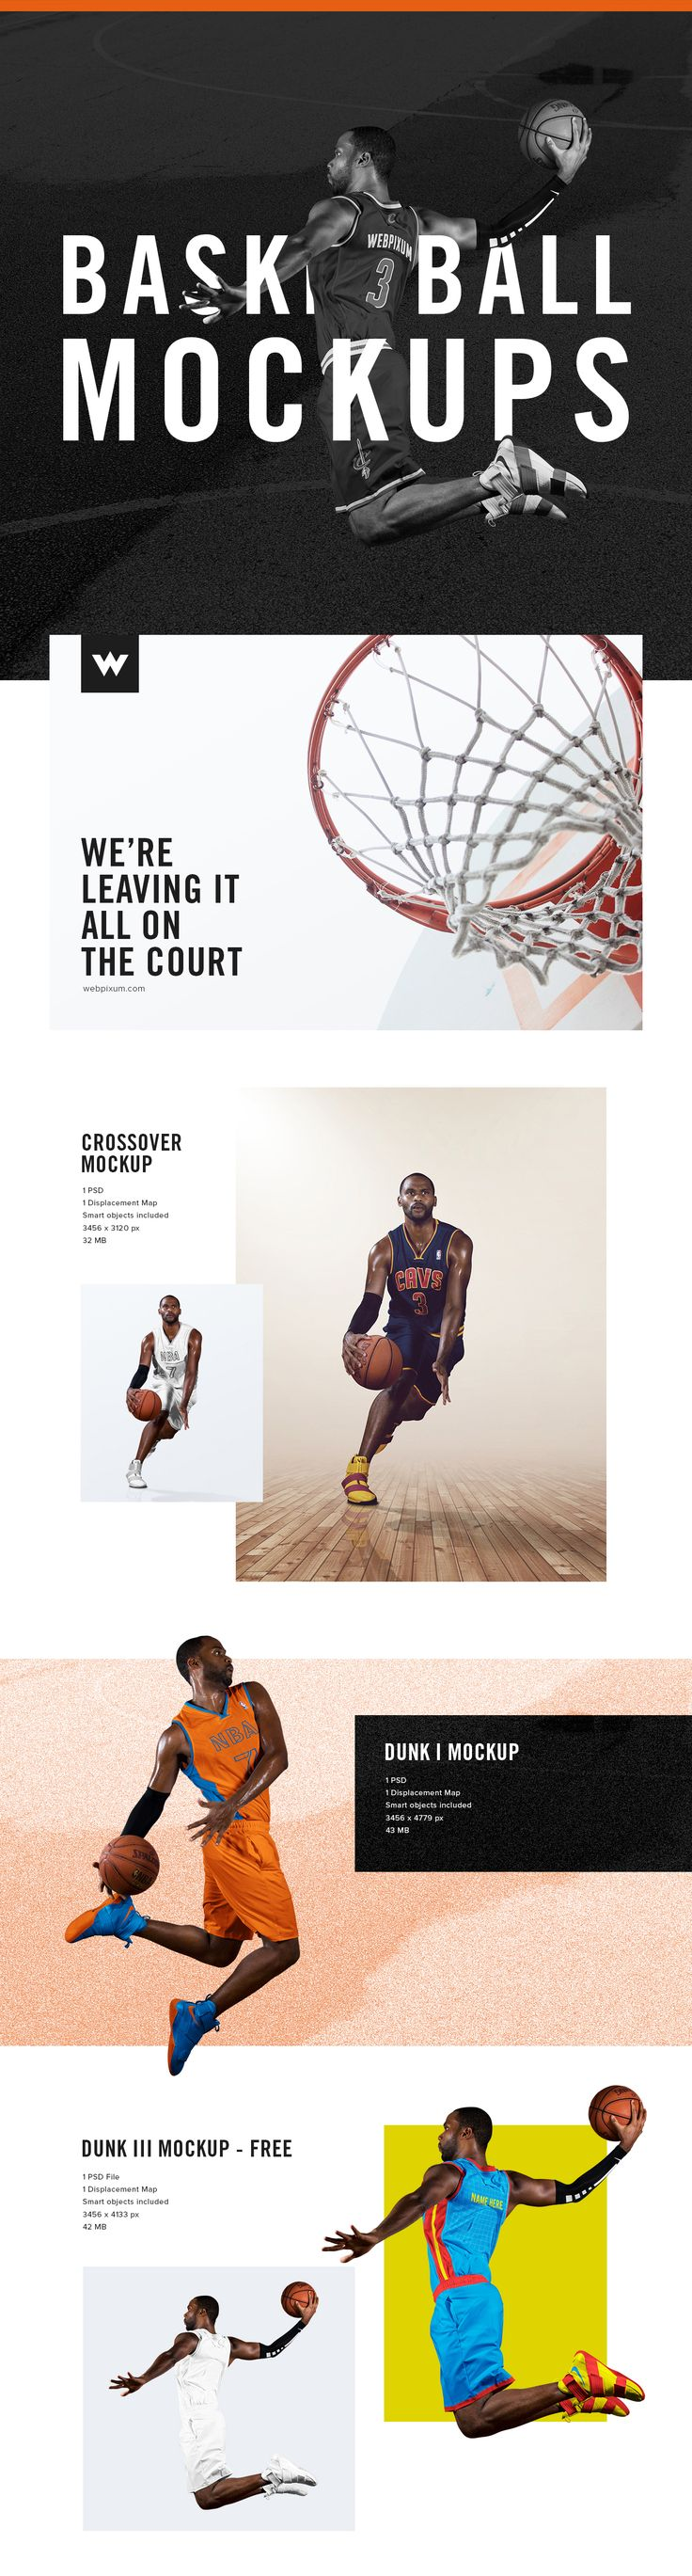 best 25 nba basketball ideas on pinterest michael jordan nba